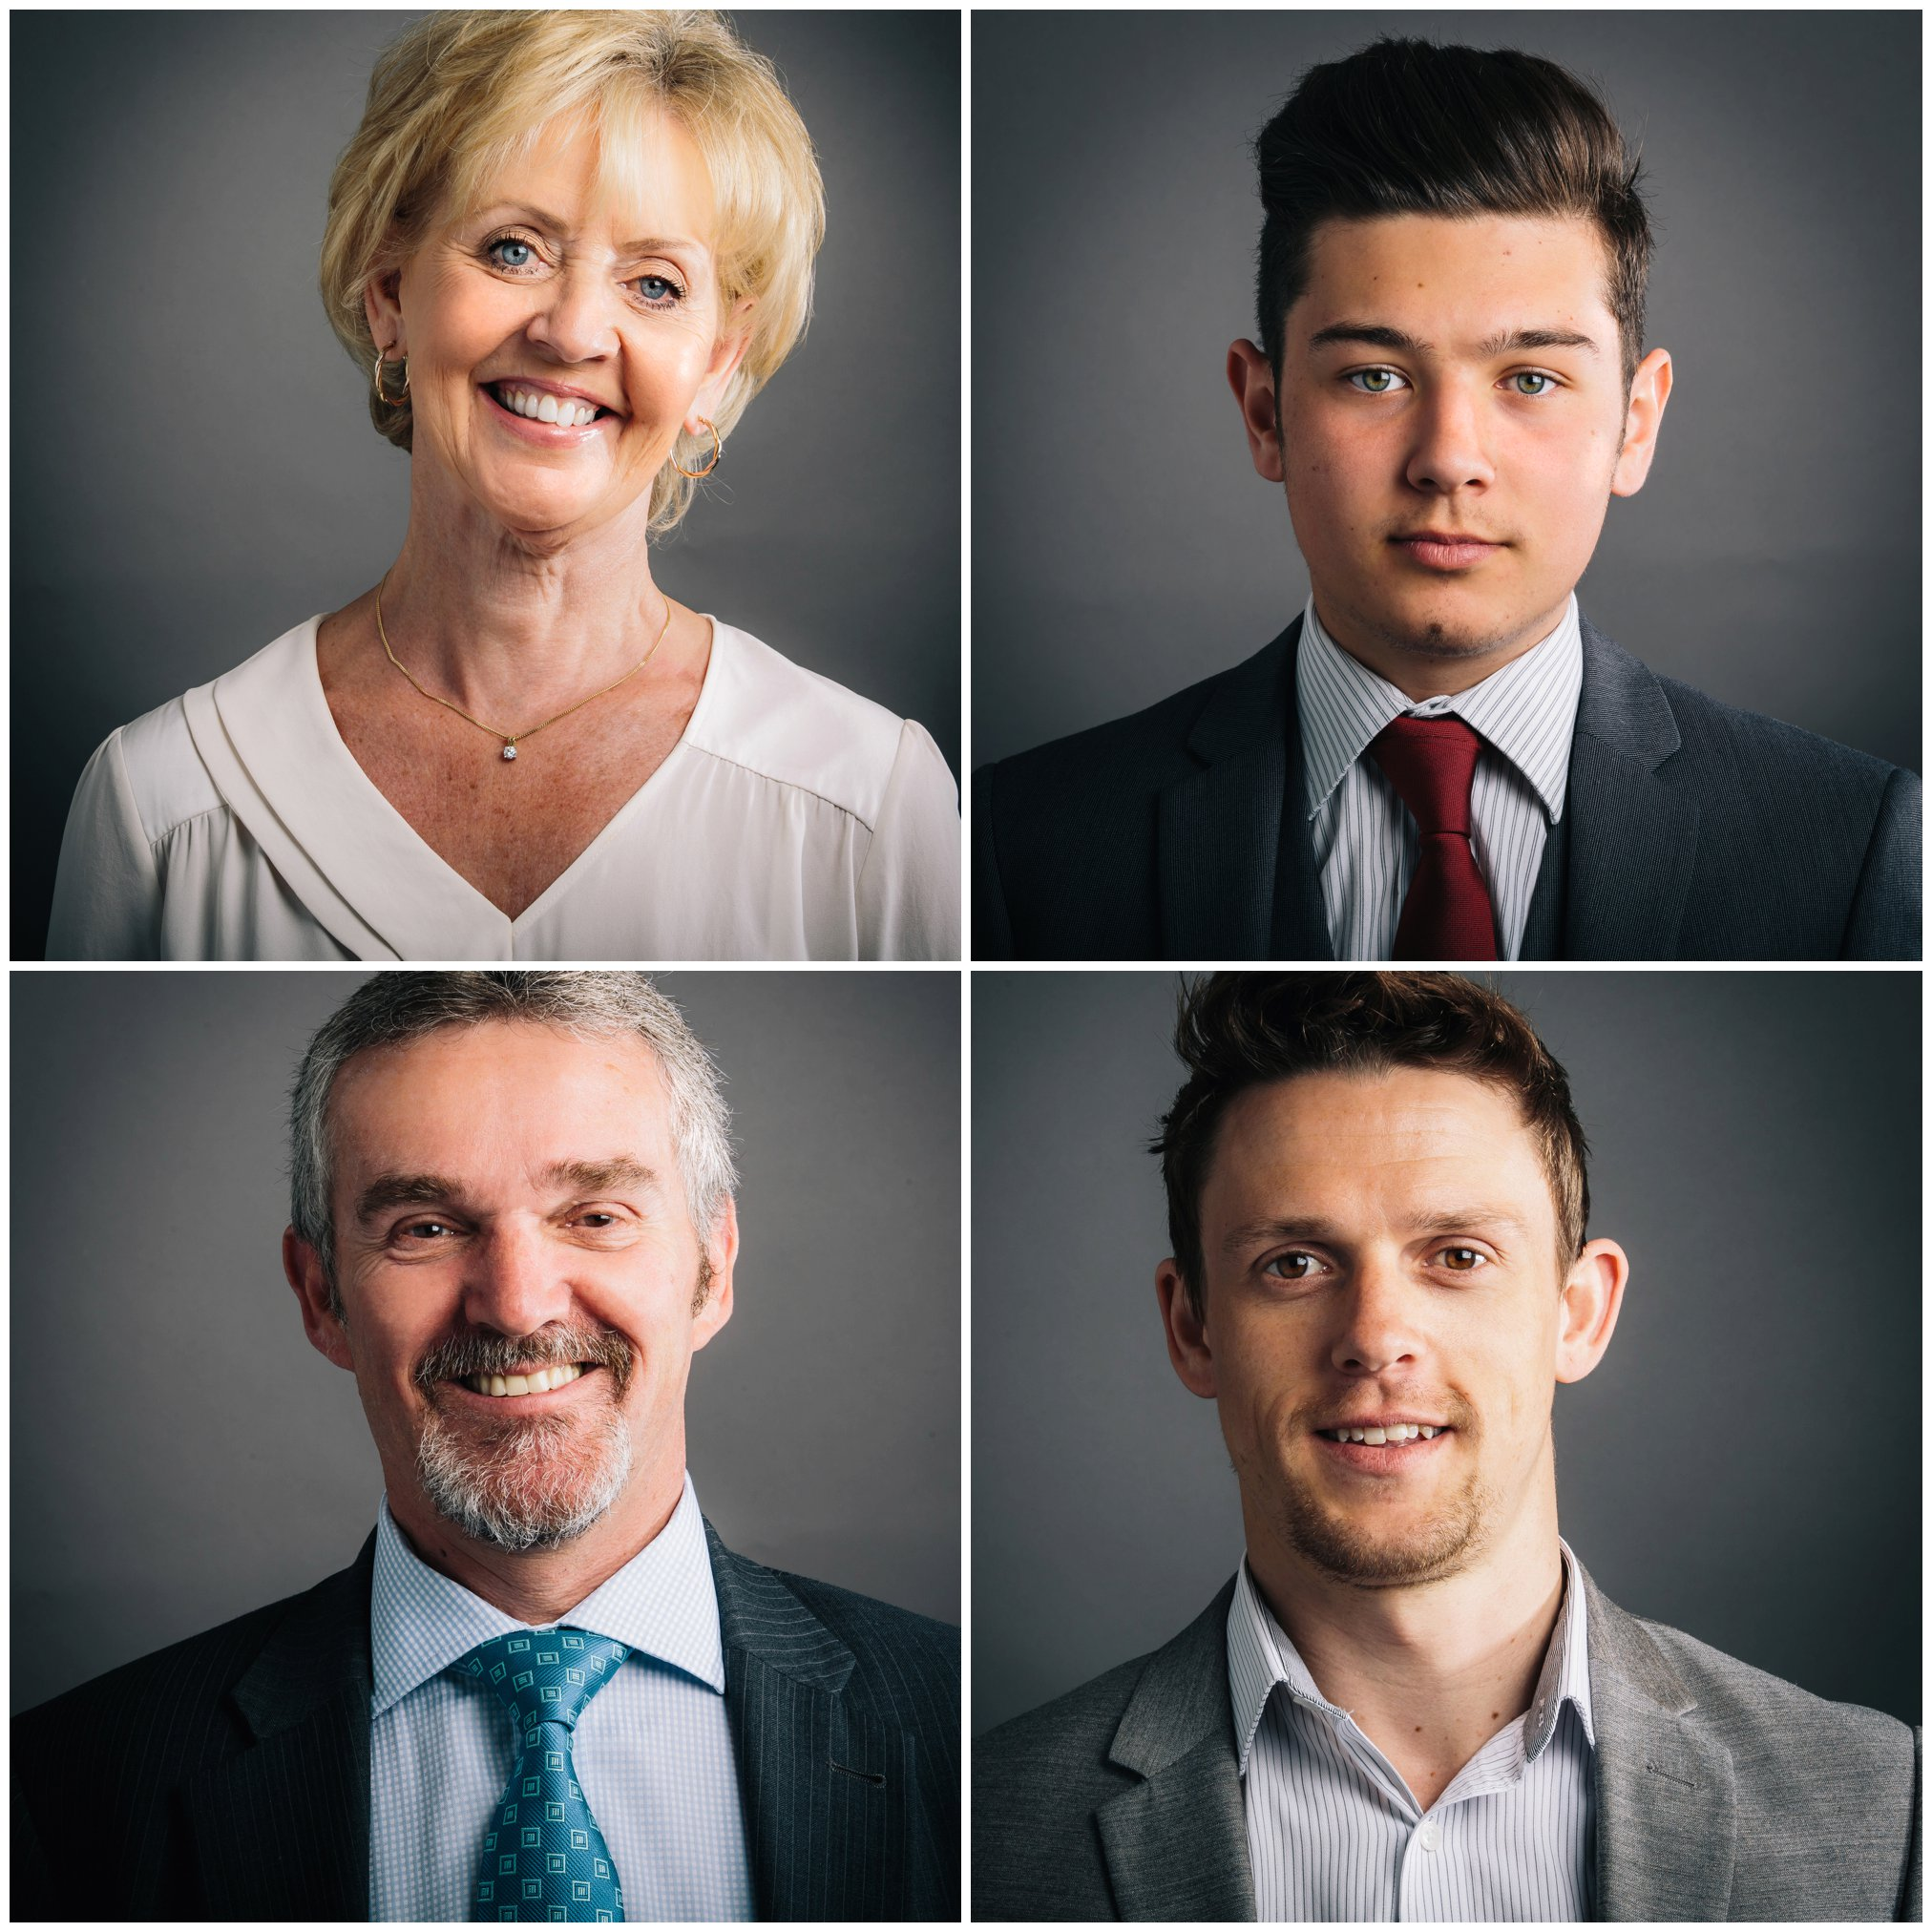 business-corporate-headshot-photographer-wales